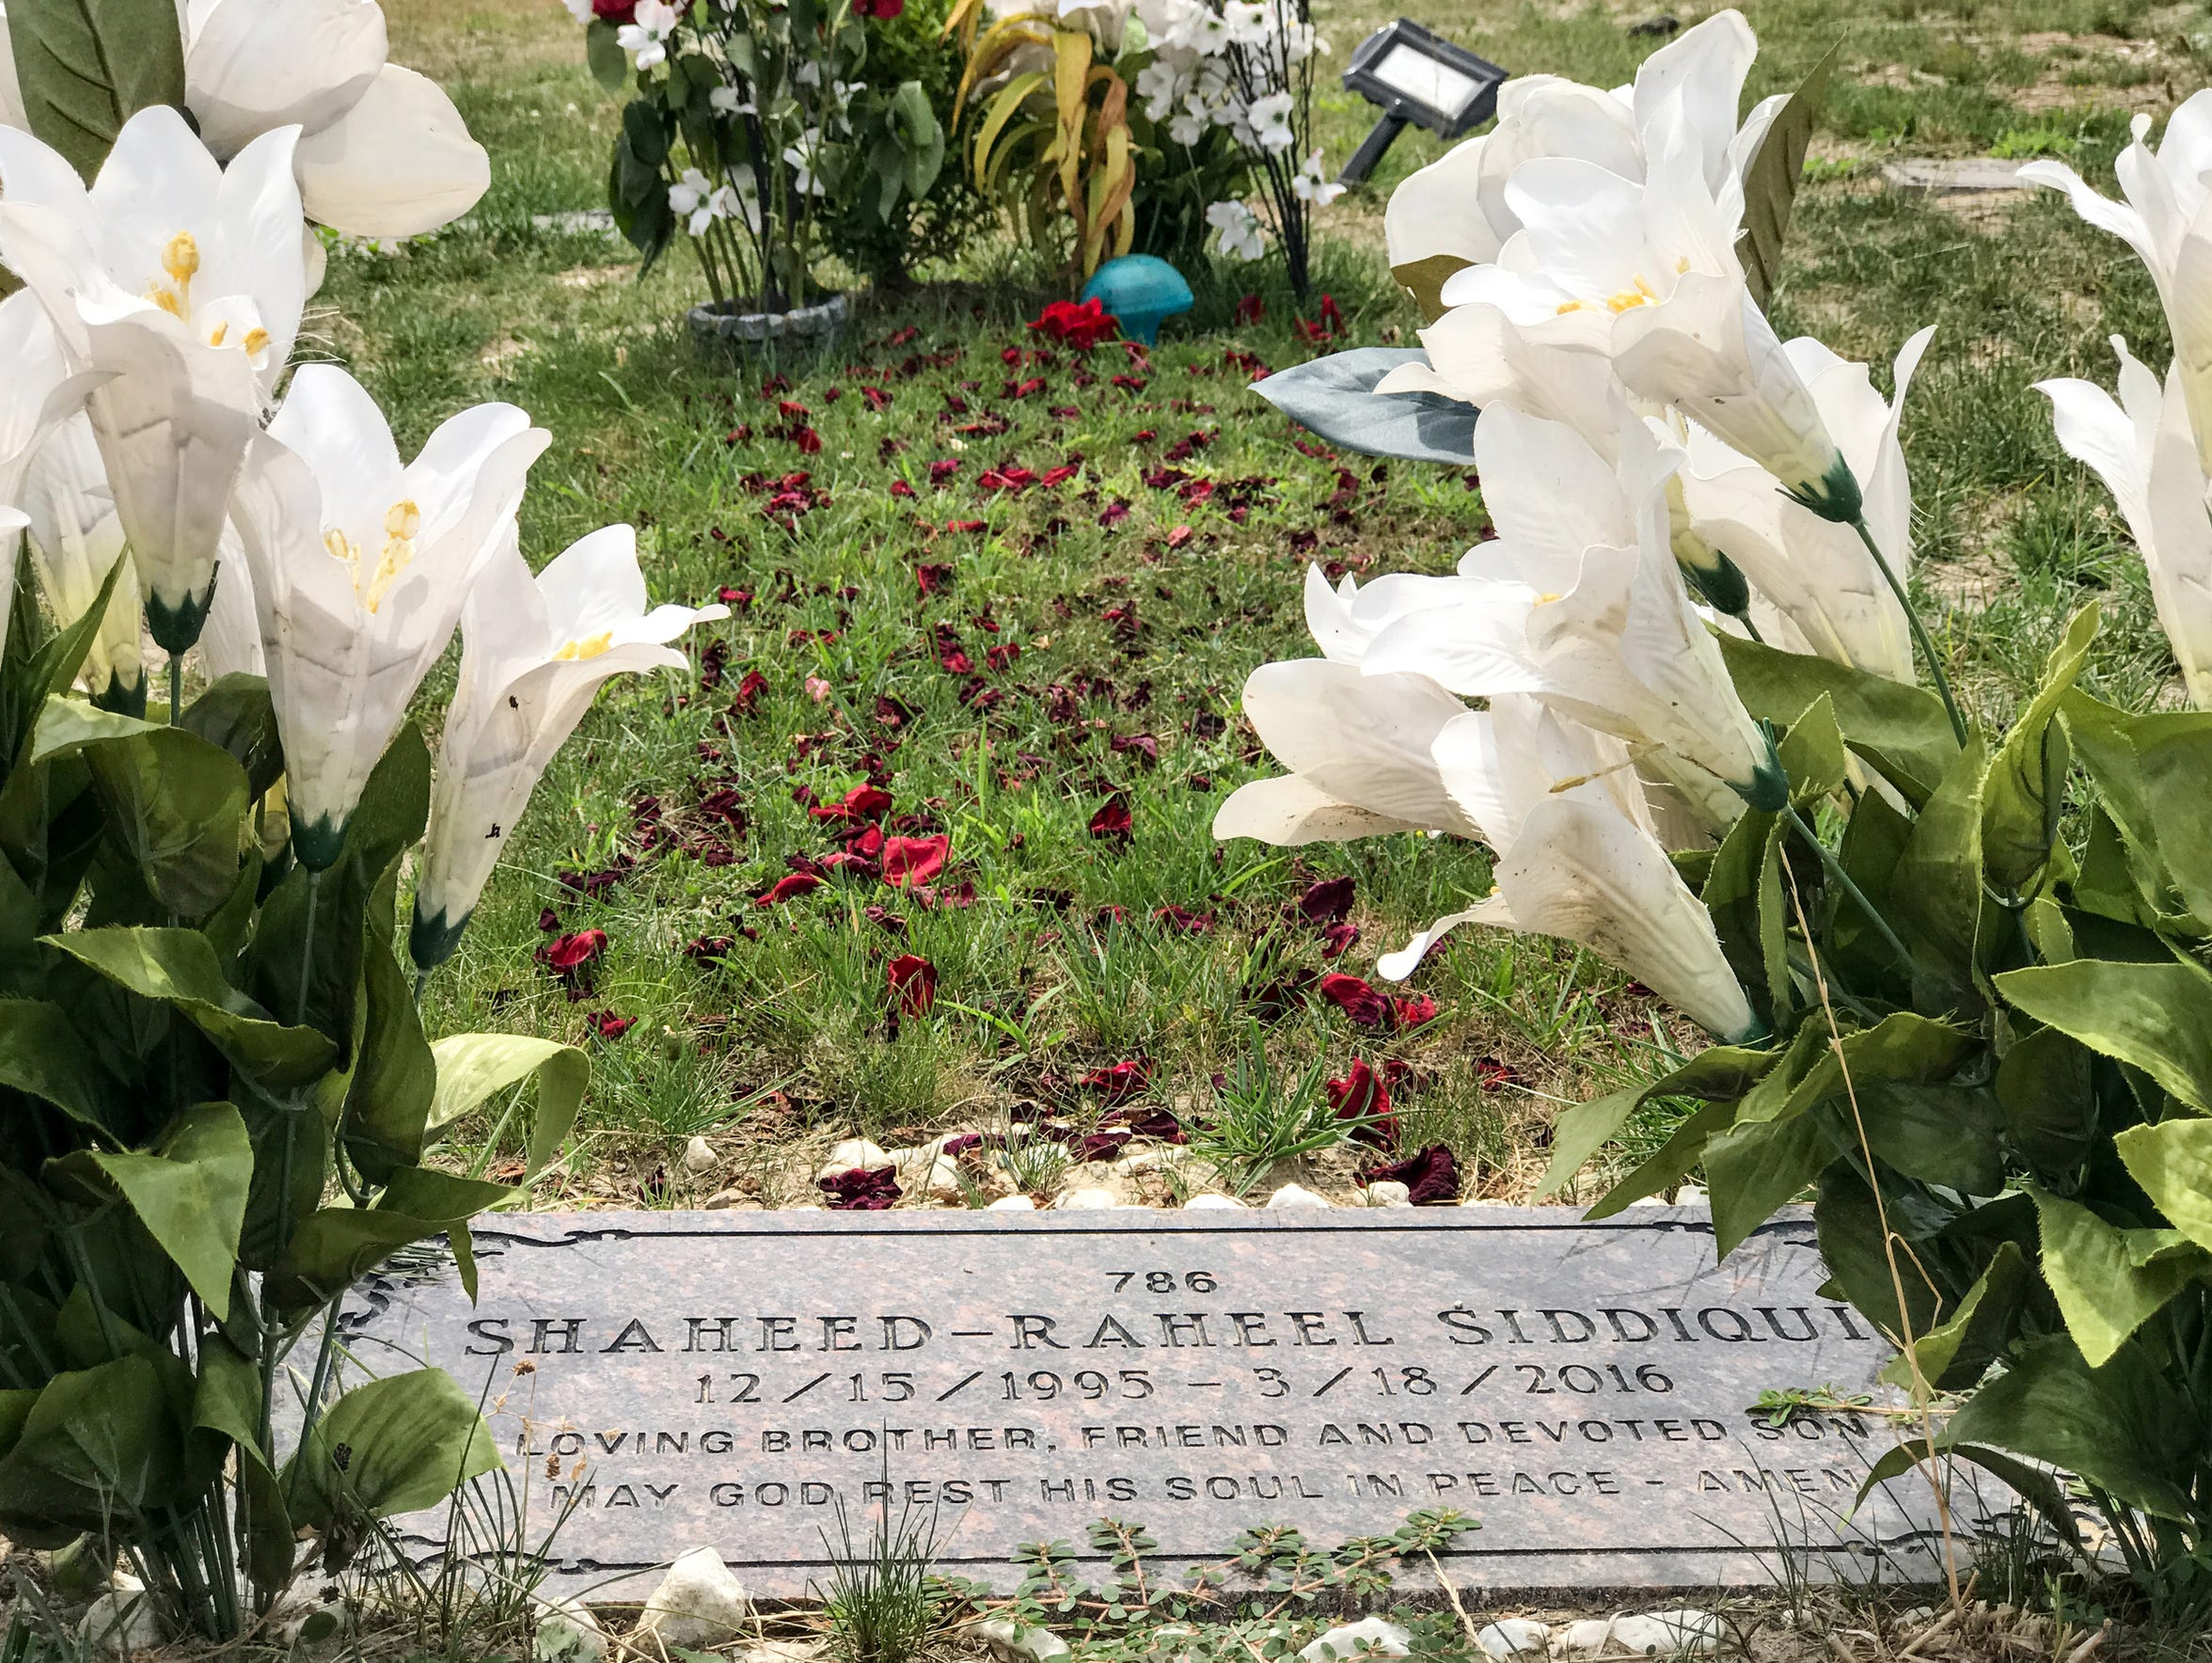 The gravesite of Raheel Siddiqui is seen at Woodmere